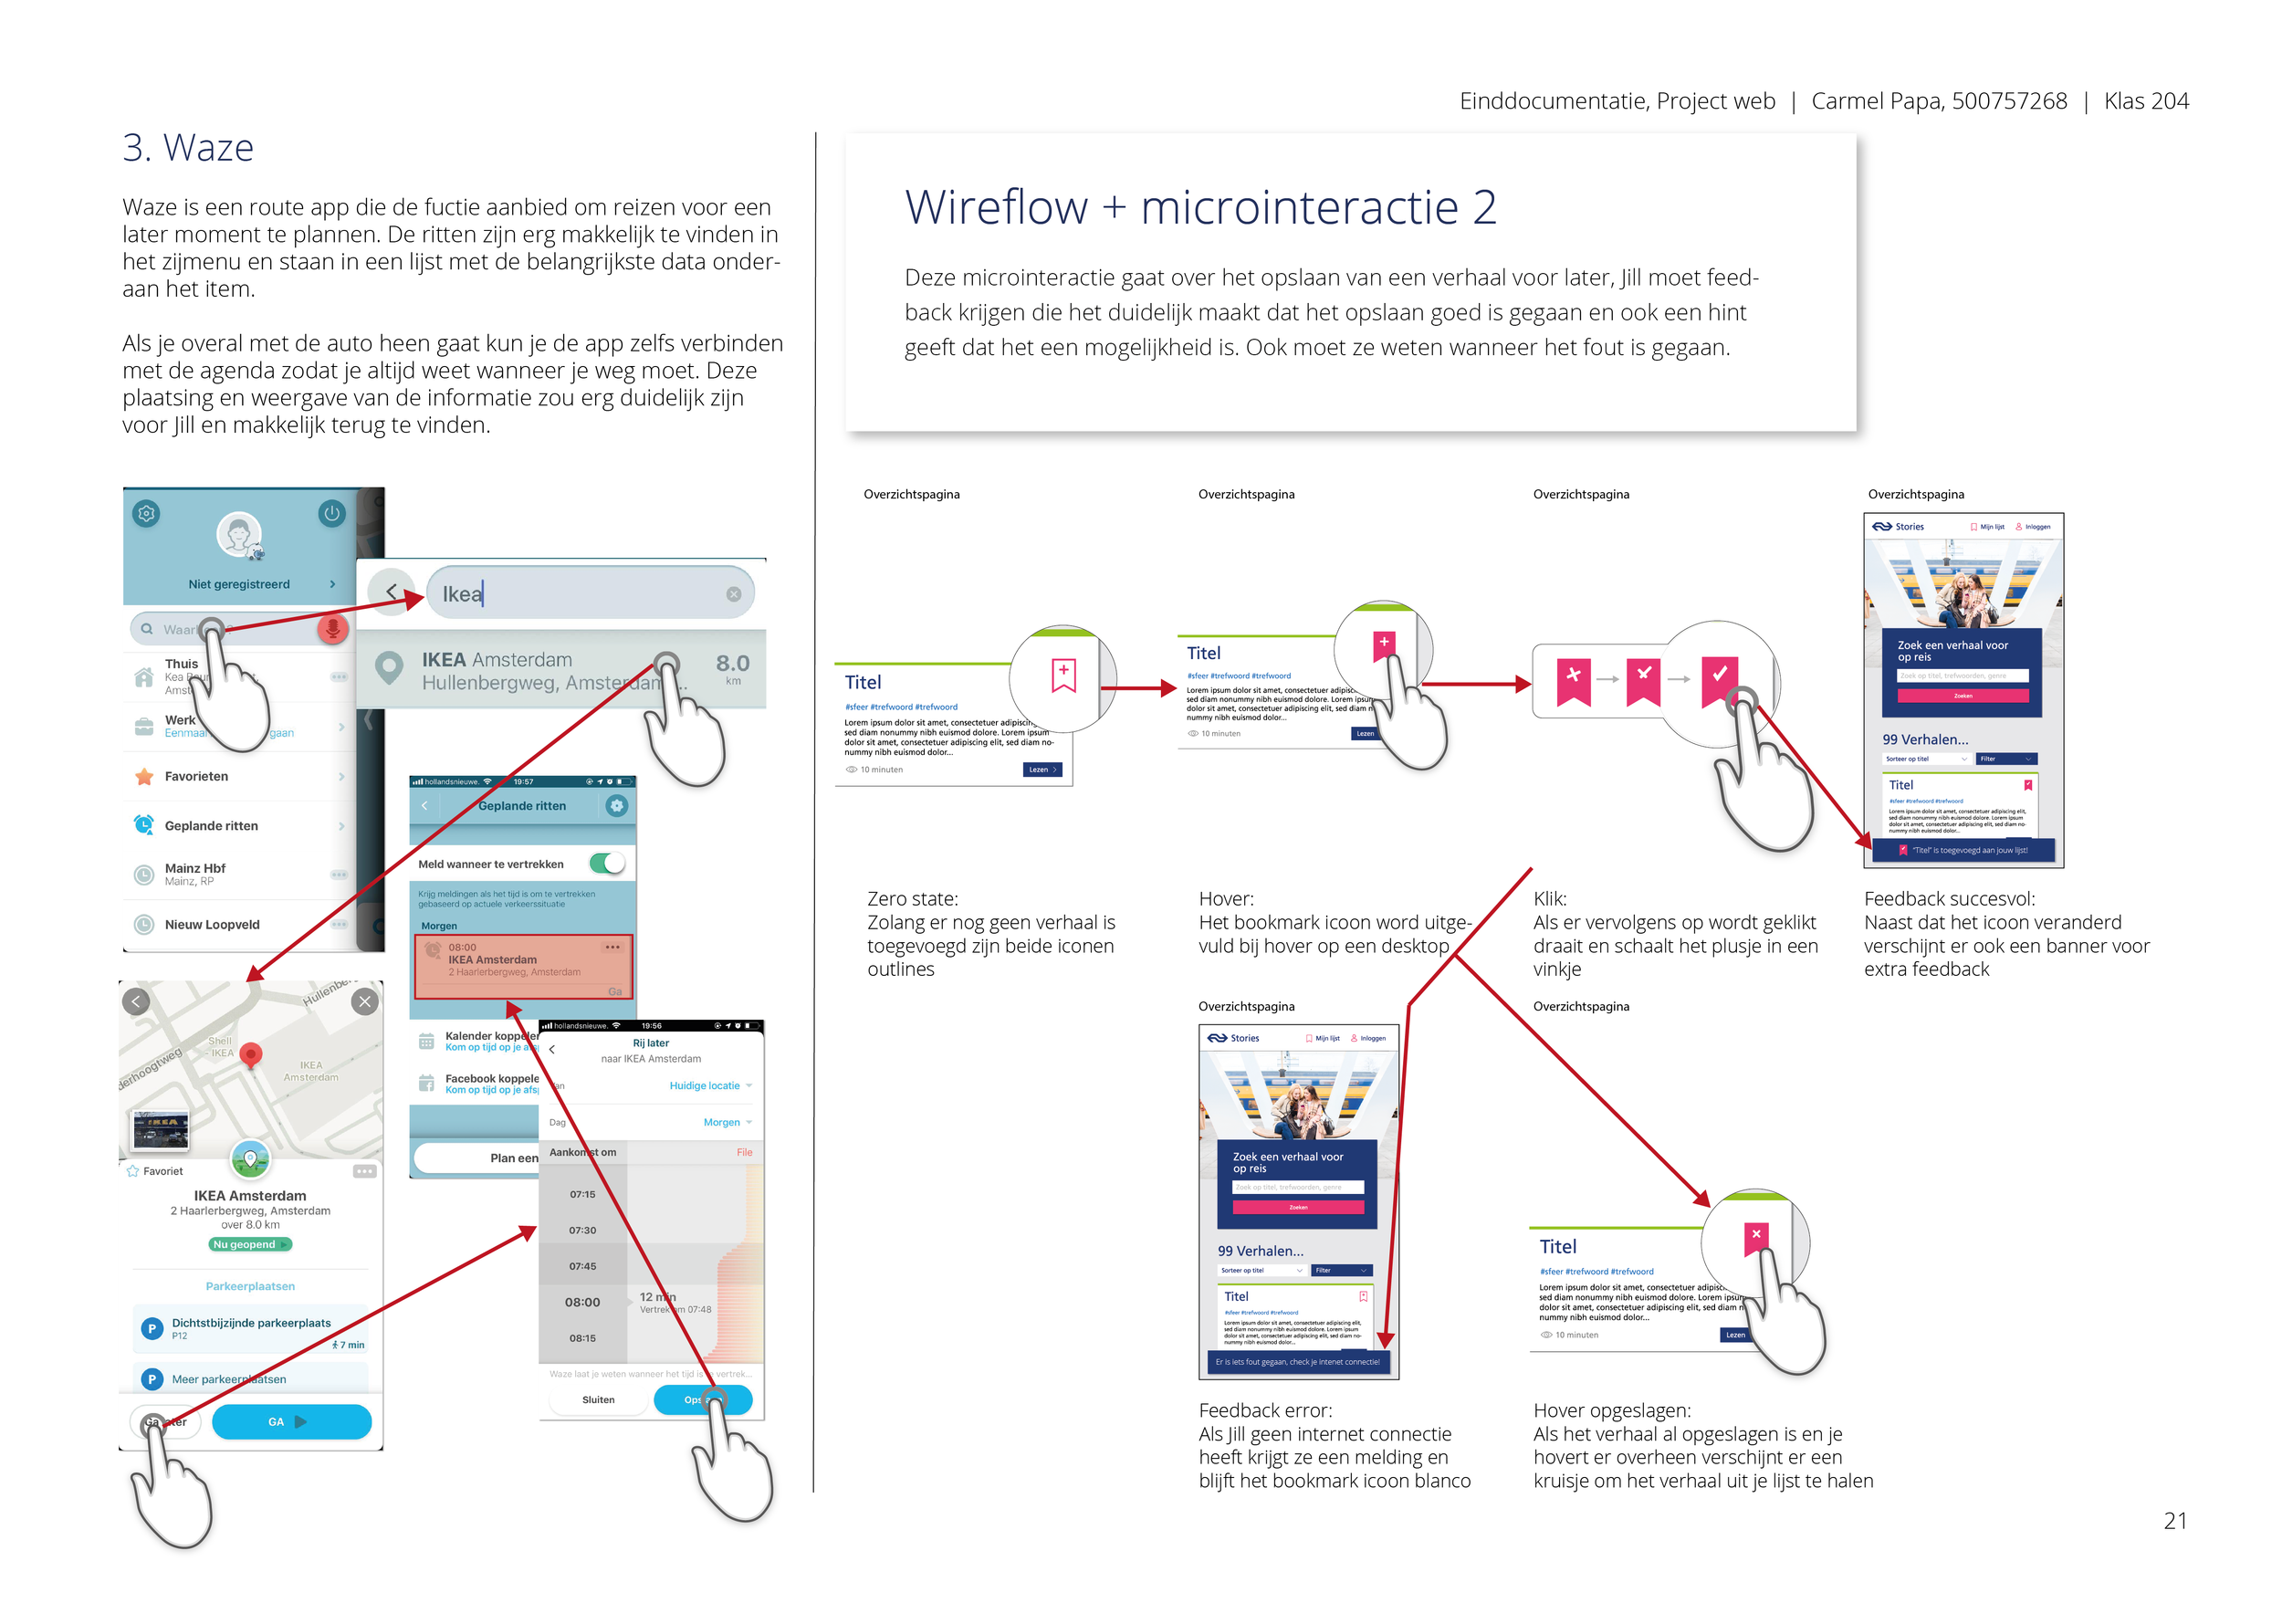 Einddocument_Project Web_Carmel Papa_204_Wireflow + microinteraction-22.png